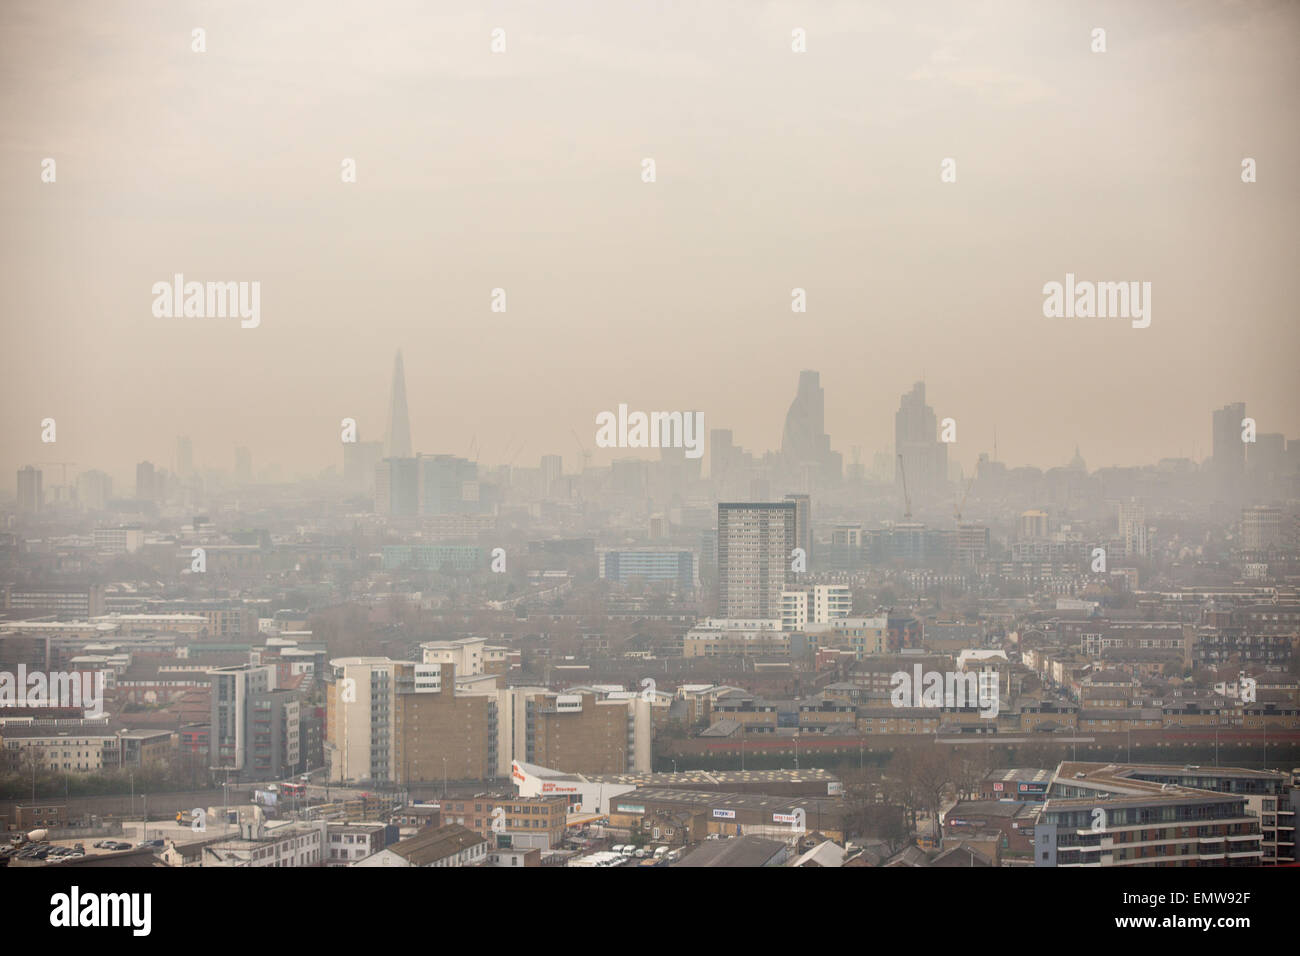 Picture shows the smog over London on Friday afternoon April 10th 2015 - Stock Image